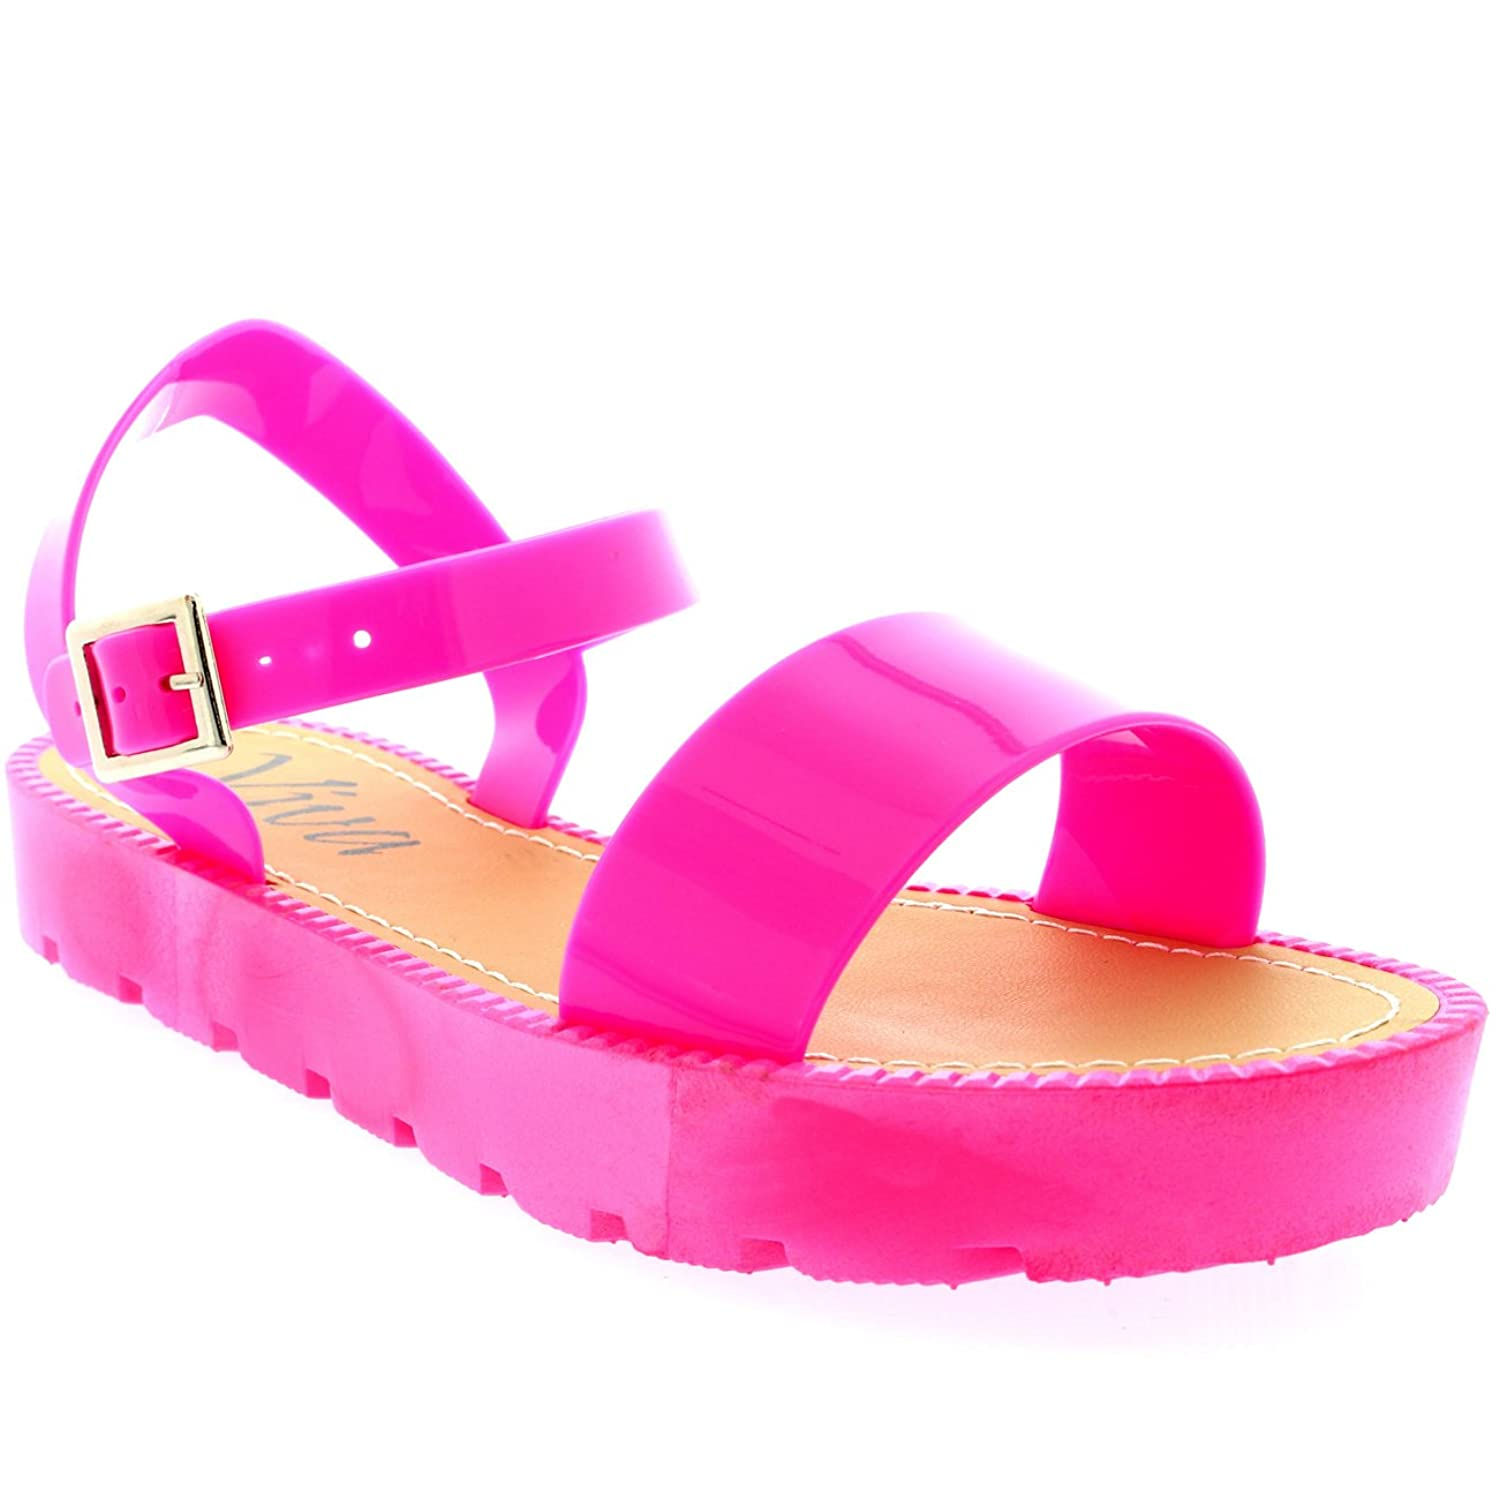 61f3a59058b1 Viva Womens Flatform Buckle Peep Toe Wedge Vacation Festival Strappy  Sandals - Casual Women s Shoes